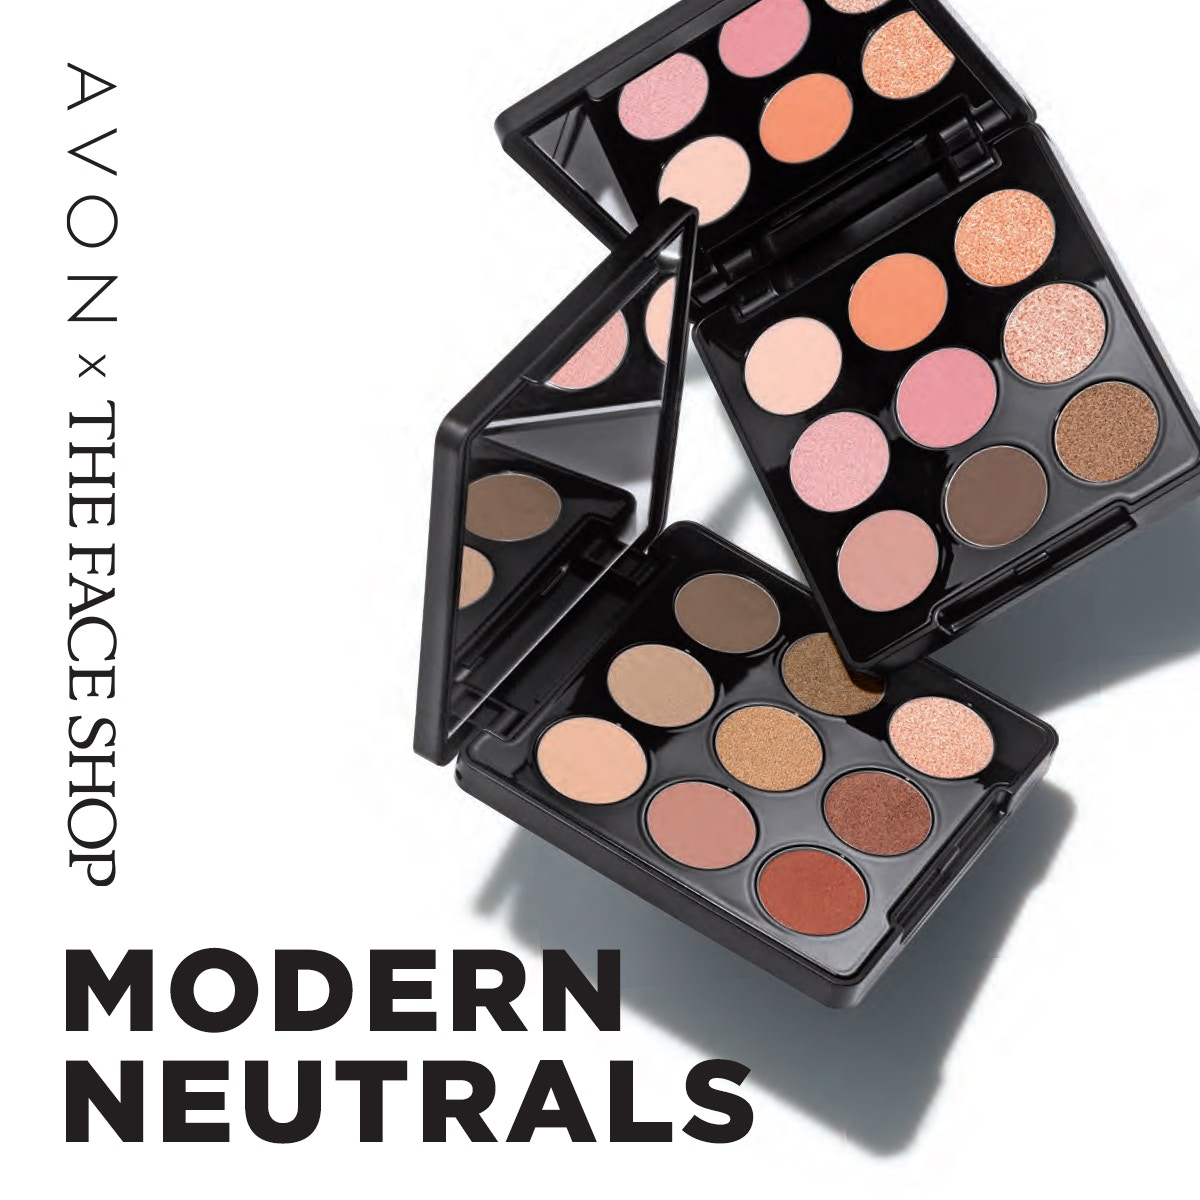 Tap into modern neutrals with our Mono Pop Eyeshadow Palette. The chic, monochromatic shades come in a mix of matte and shimmer, allowing you to create the perfect multidimensional look. .27 oz. total net wt.  http://go.youravon.com/3j6bftpic.twitter.com/xZaxaAnNT1